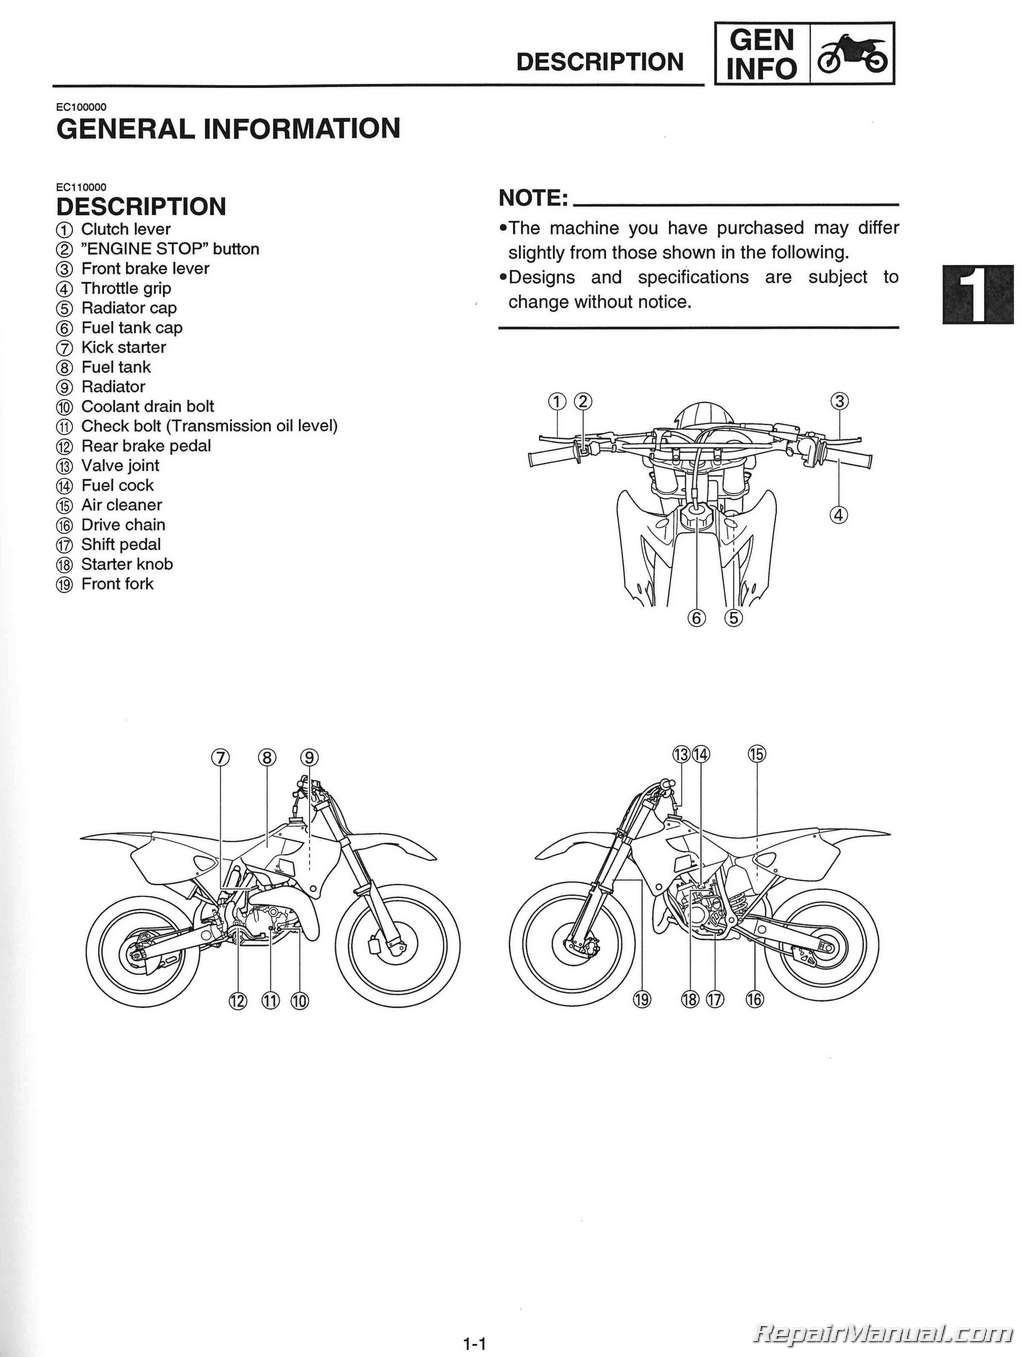 Yz 125 Engine Diagram Wiring Schemes 1998 Toyota Supra Kick Panel Fuse Box 2001 Yamaha Yz125 Motorcycle Owners Service Manual Rh Repairmanual Com 1999